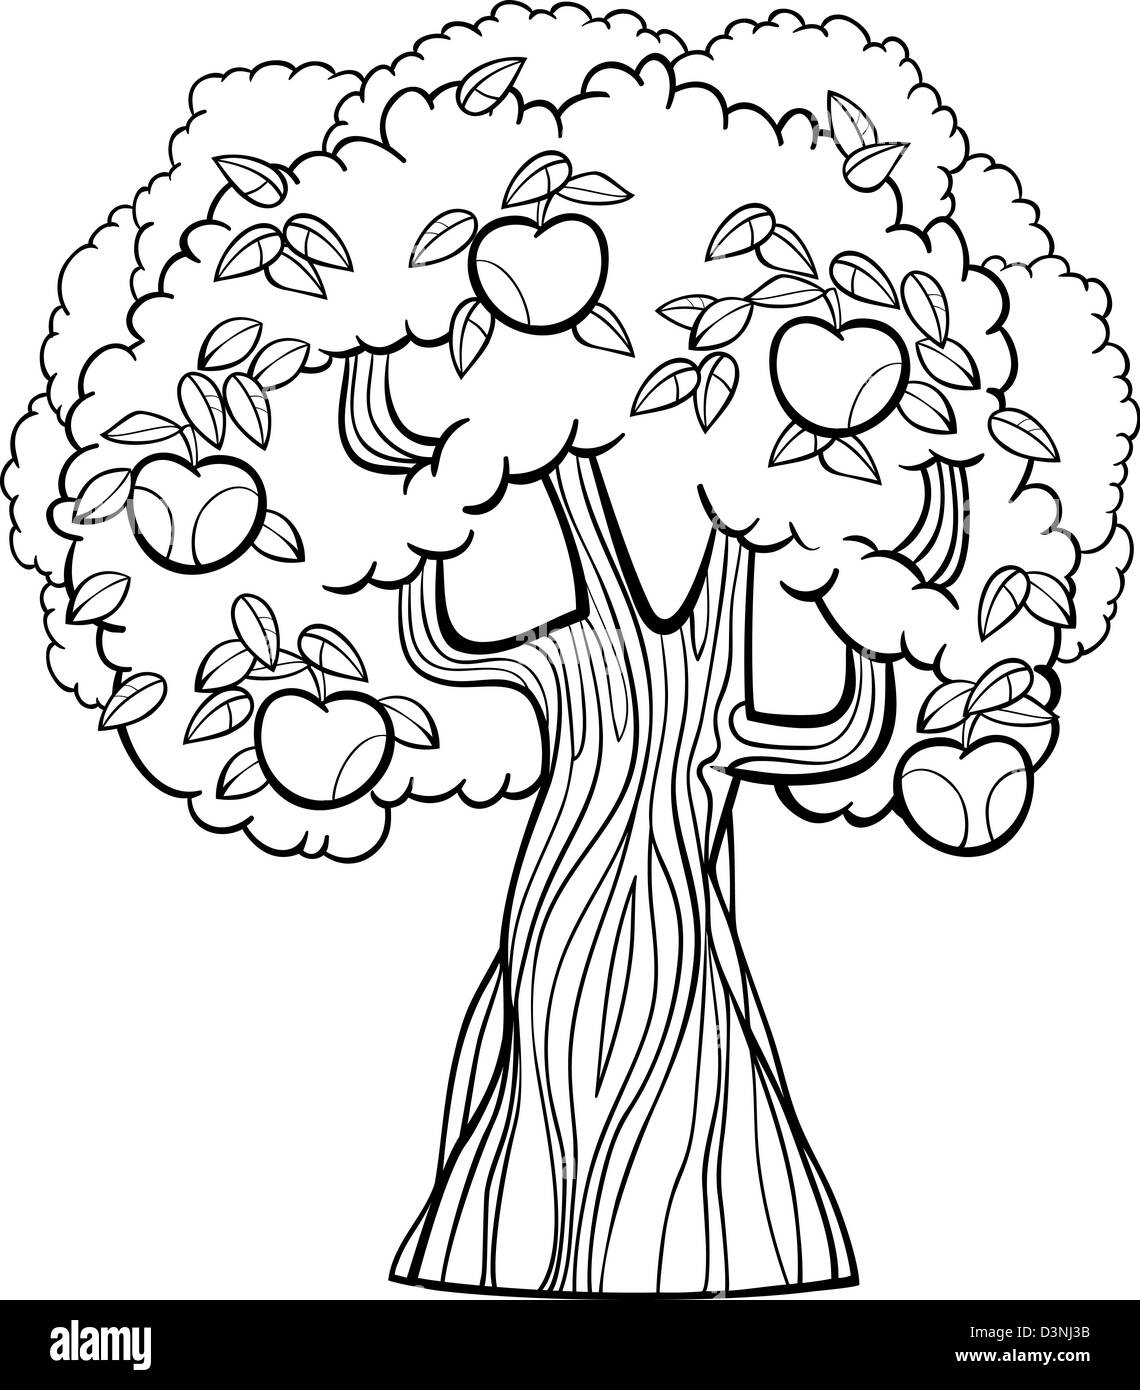 black and white cartoon illustration of apple tree with apples for